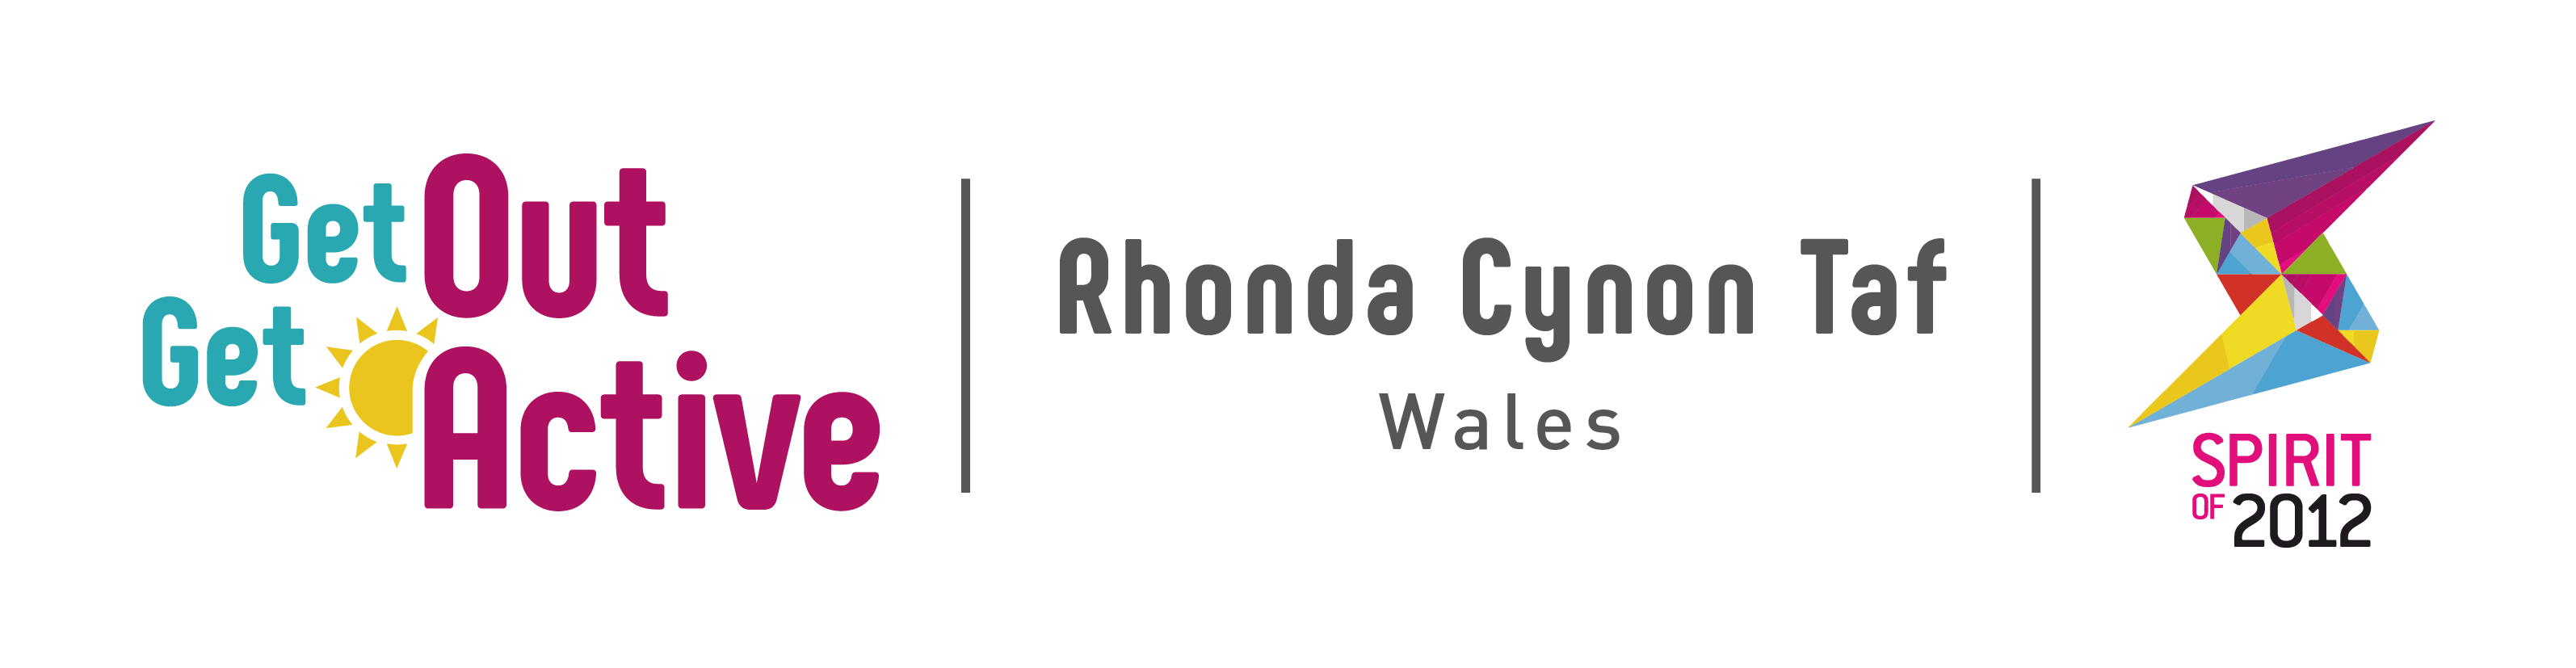 Get Out and Get Active Rhonda Cynon Taf Wales